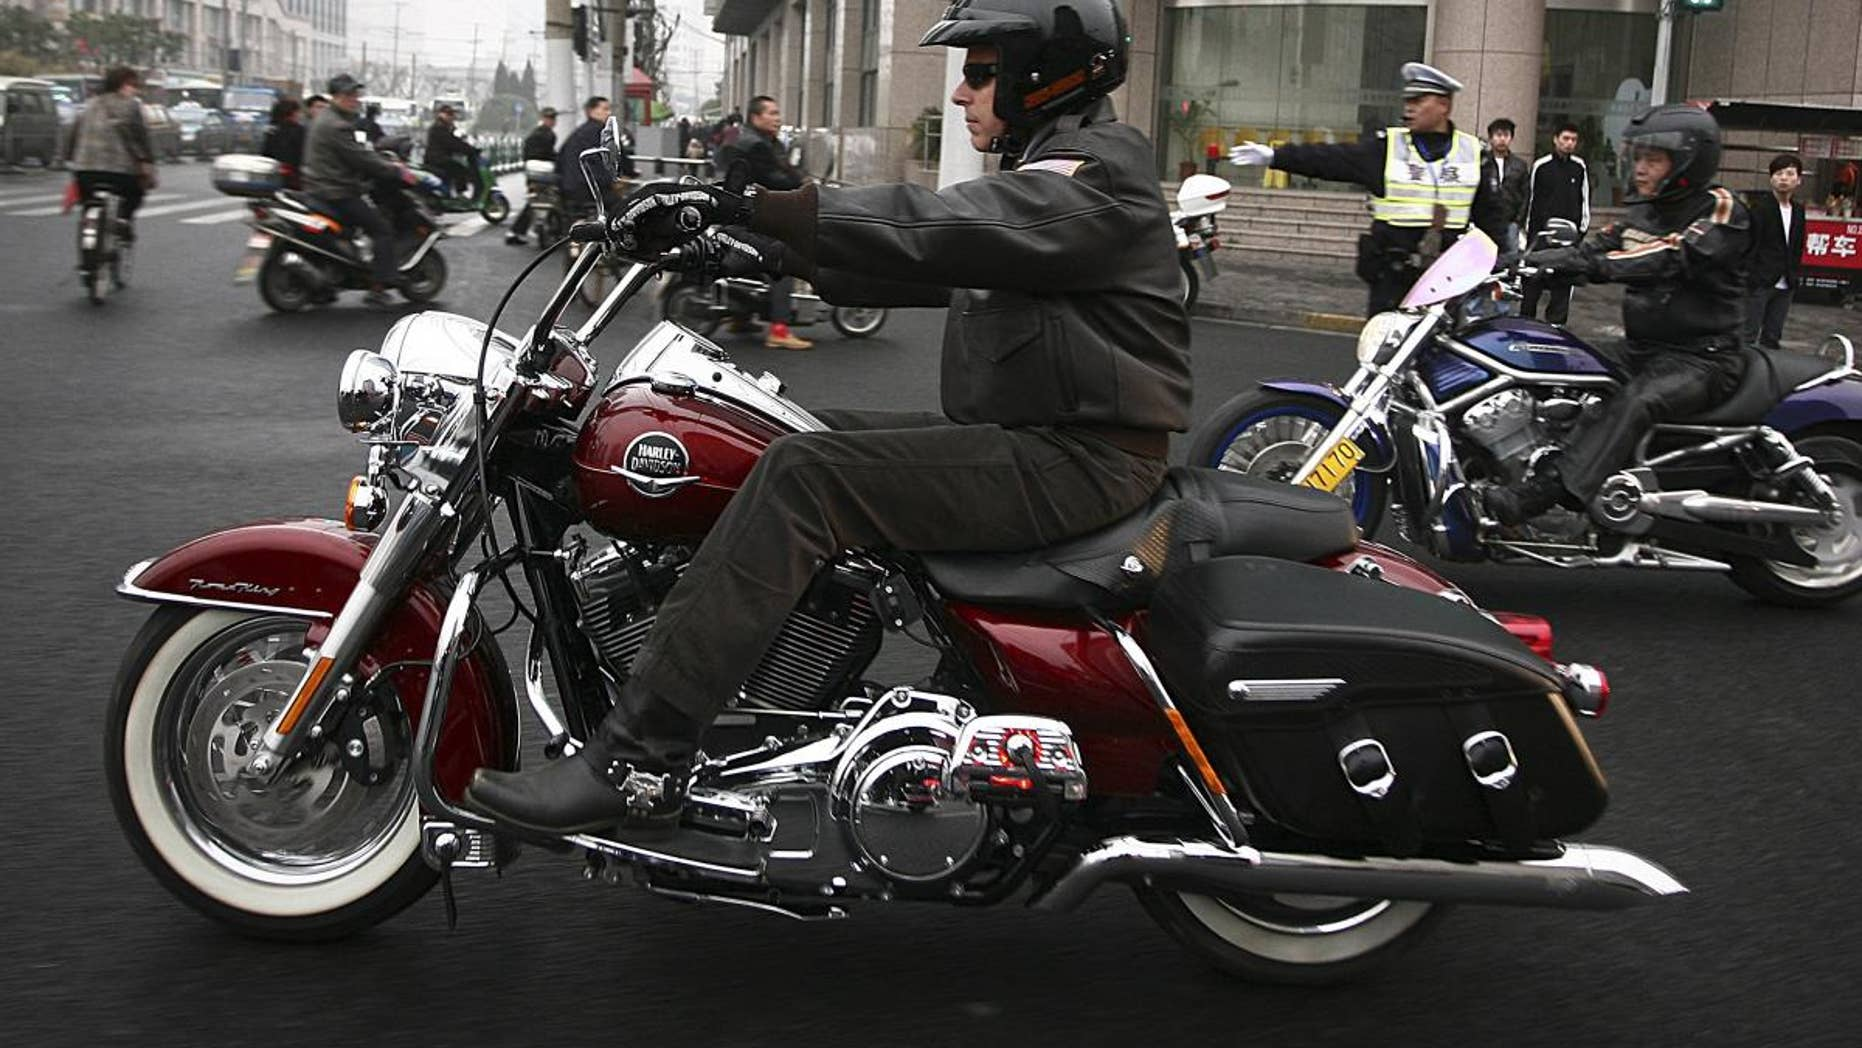 U.S. Ambassador to China Jon Huntsman rides a Harley-Davidson motorbike cruise around town in Shanghai, China Thursday April 7, 2011. Huntsman is in Shanghai to deliver a farewell speech at the Barnett-Oksenberg Lecture before heading back to U.S. later this month. (AP Photo)